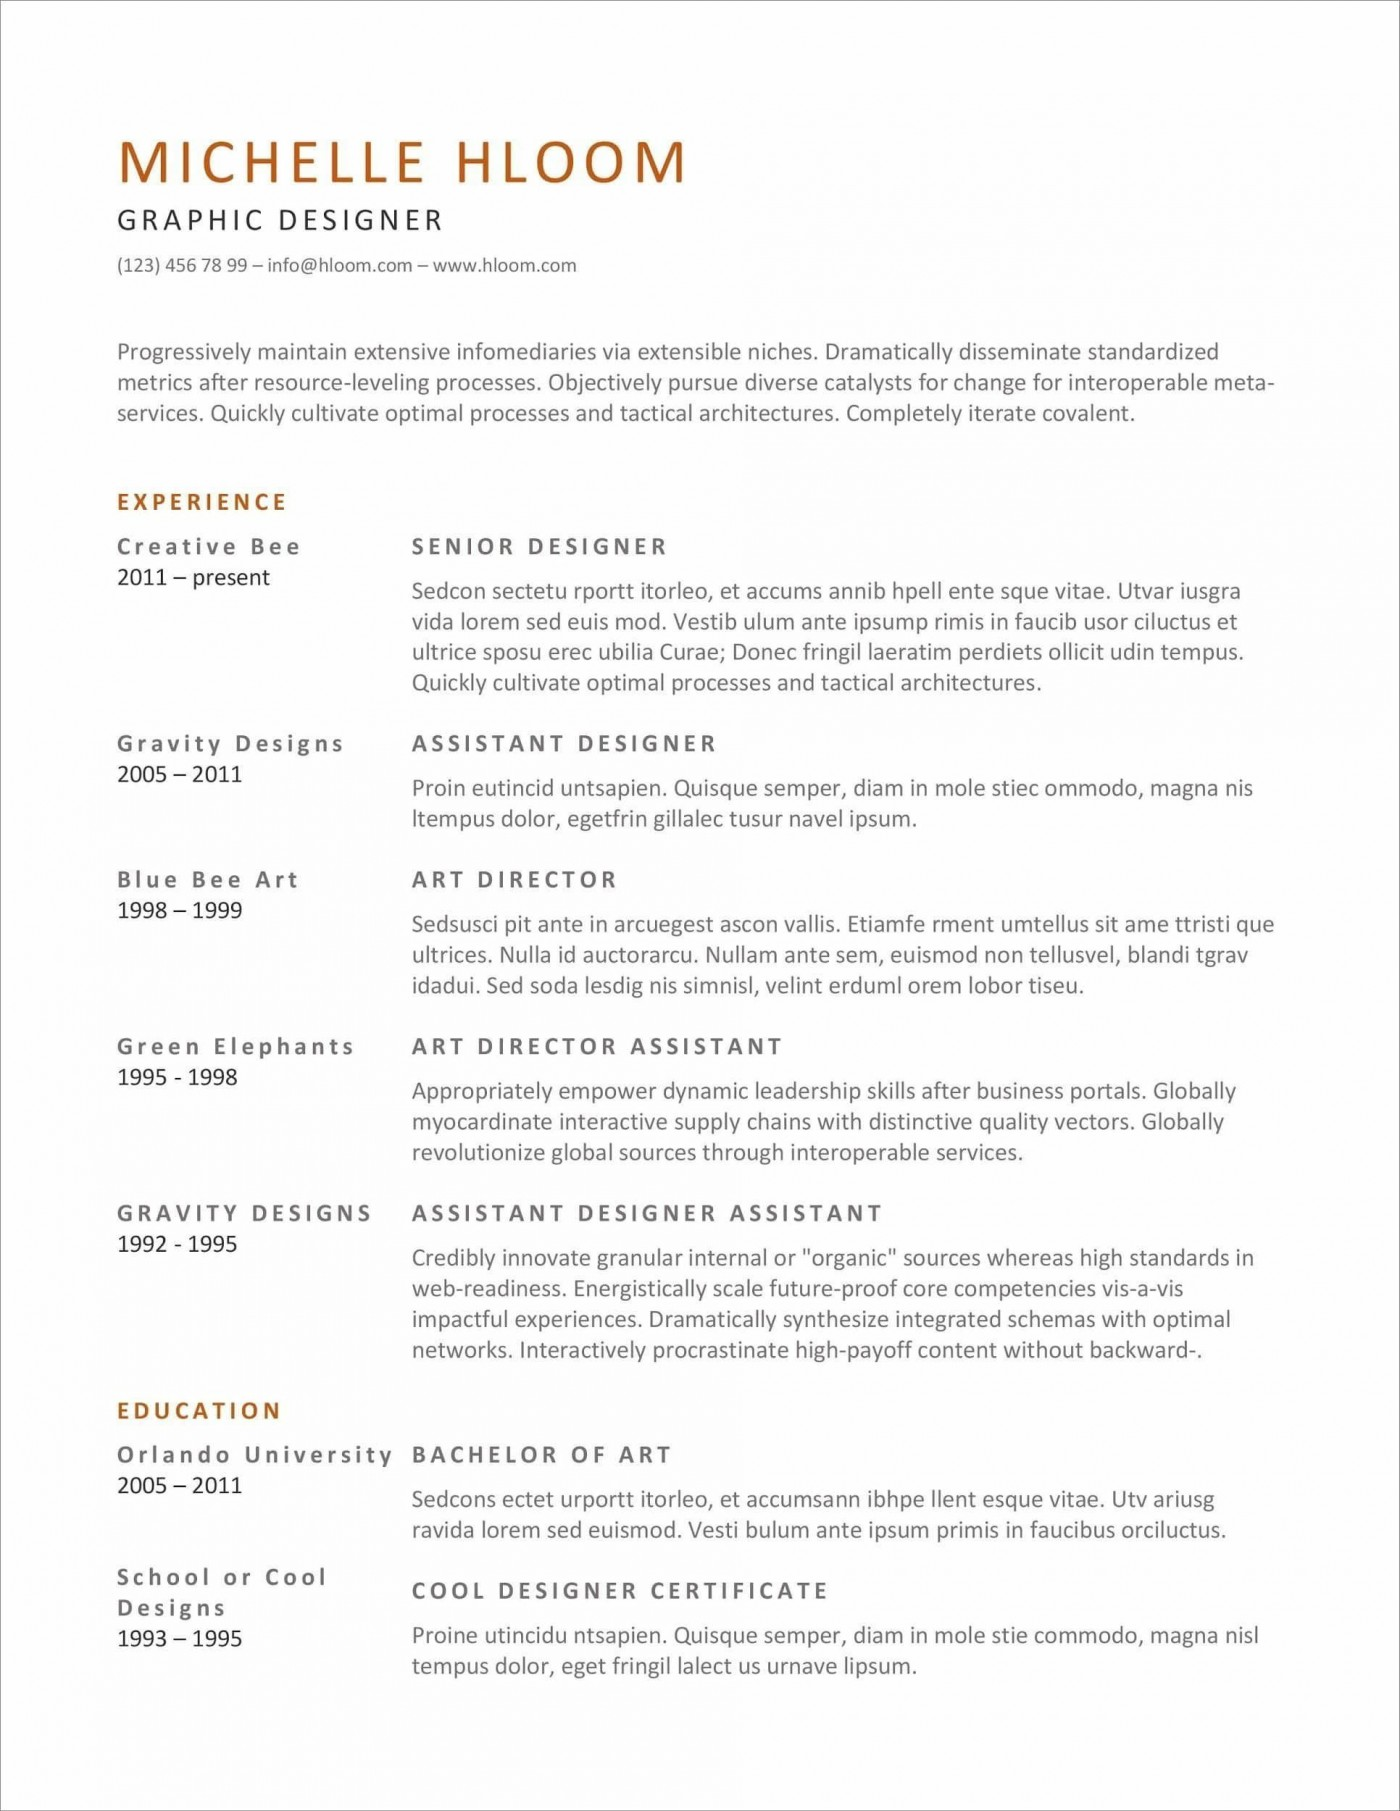 008 Stirring Download Resume Template Microsoft Word Design  Free 2007 2010 Creative For Fresher1400